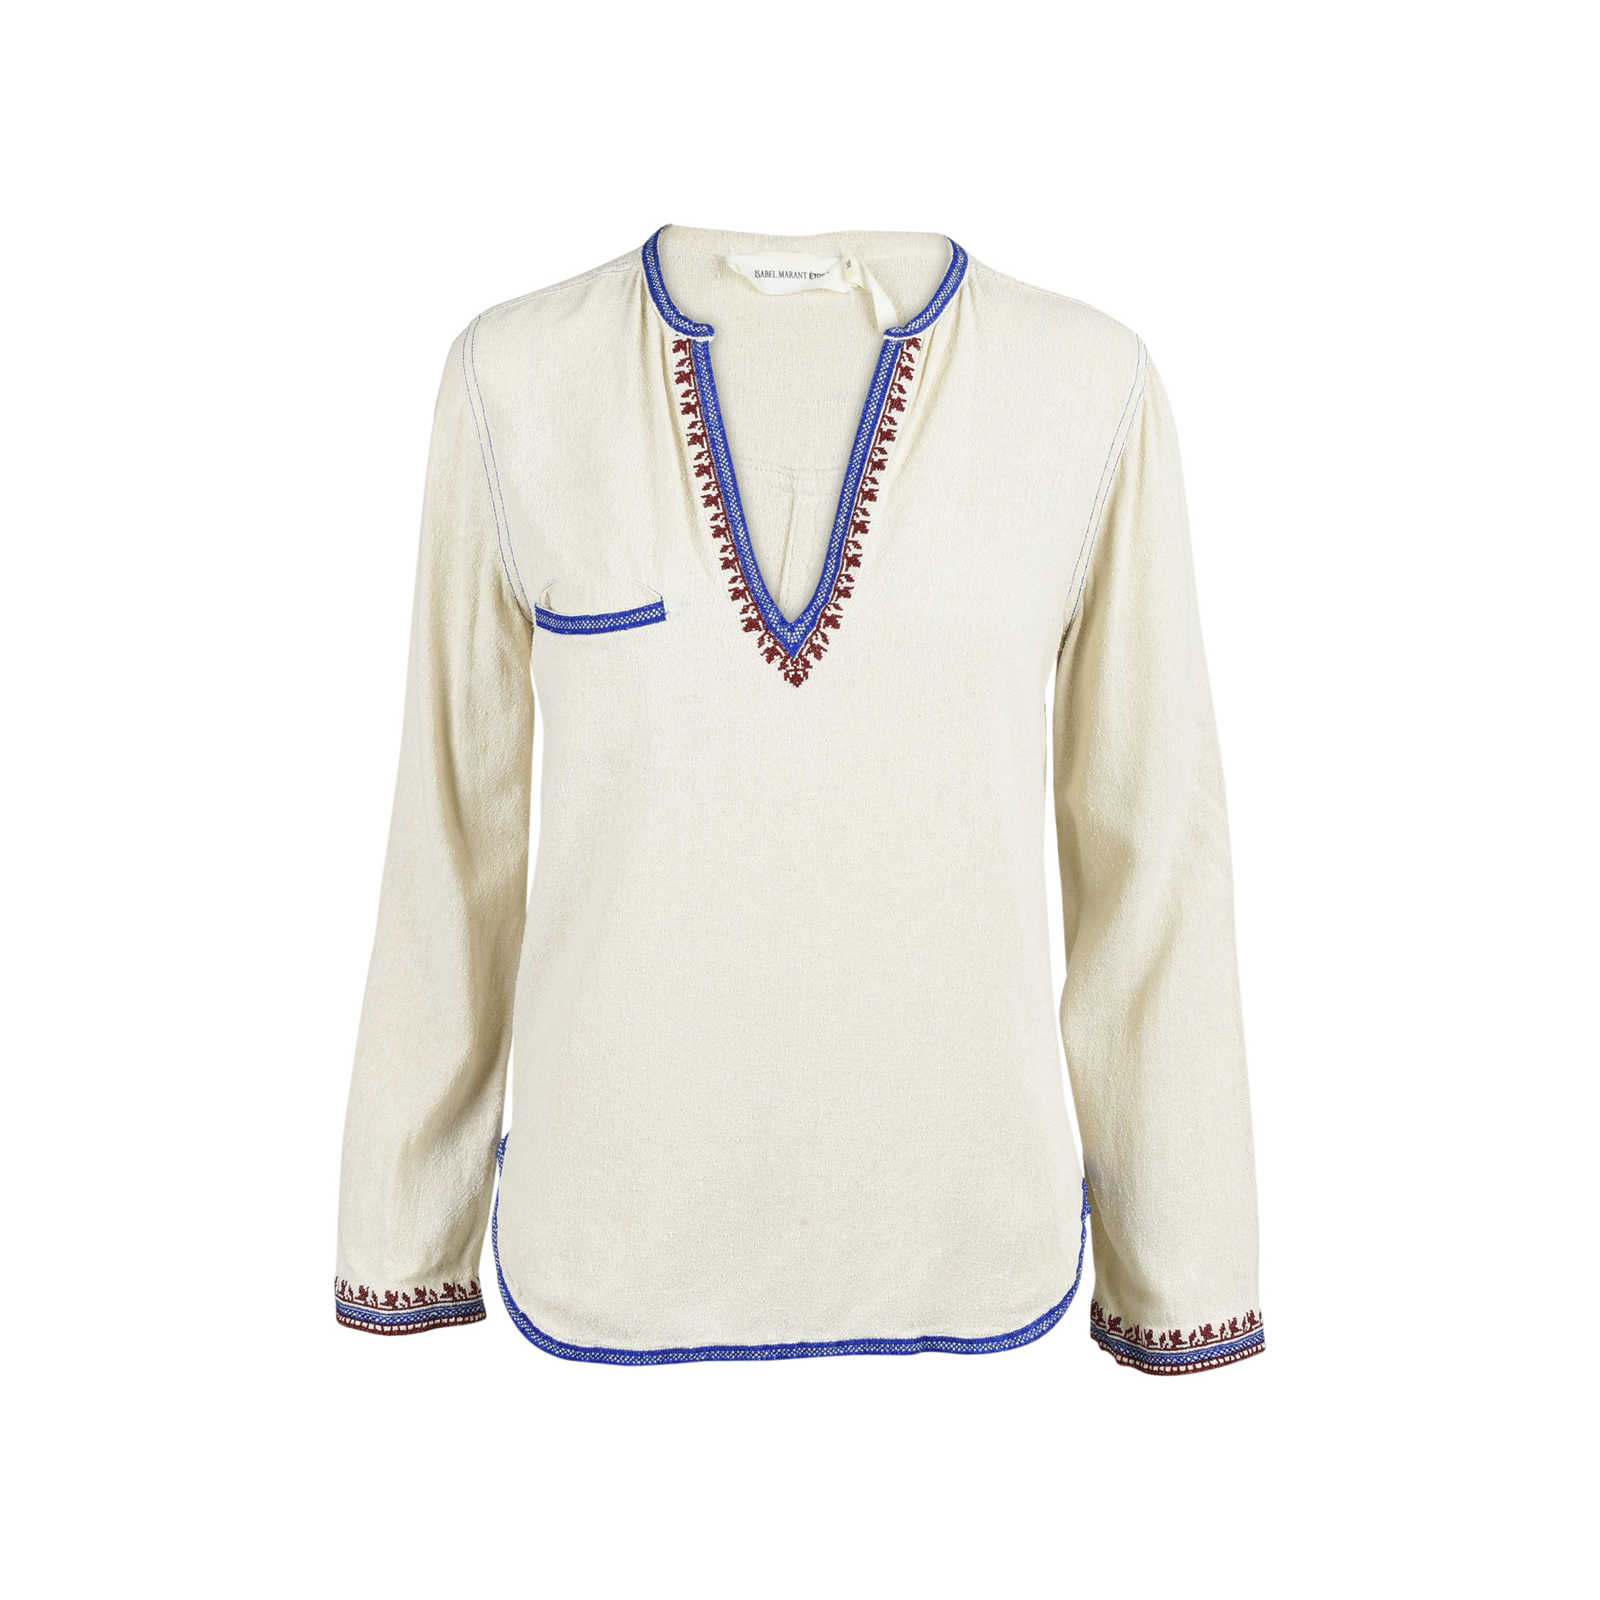 0c8bd87c178 Authentic Second Hand Isabel Marant Étoile Embroidered Tunic Top  (PSS-054-00198) ...